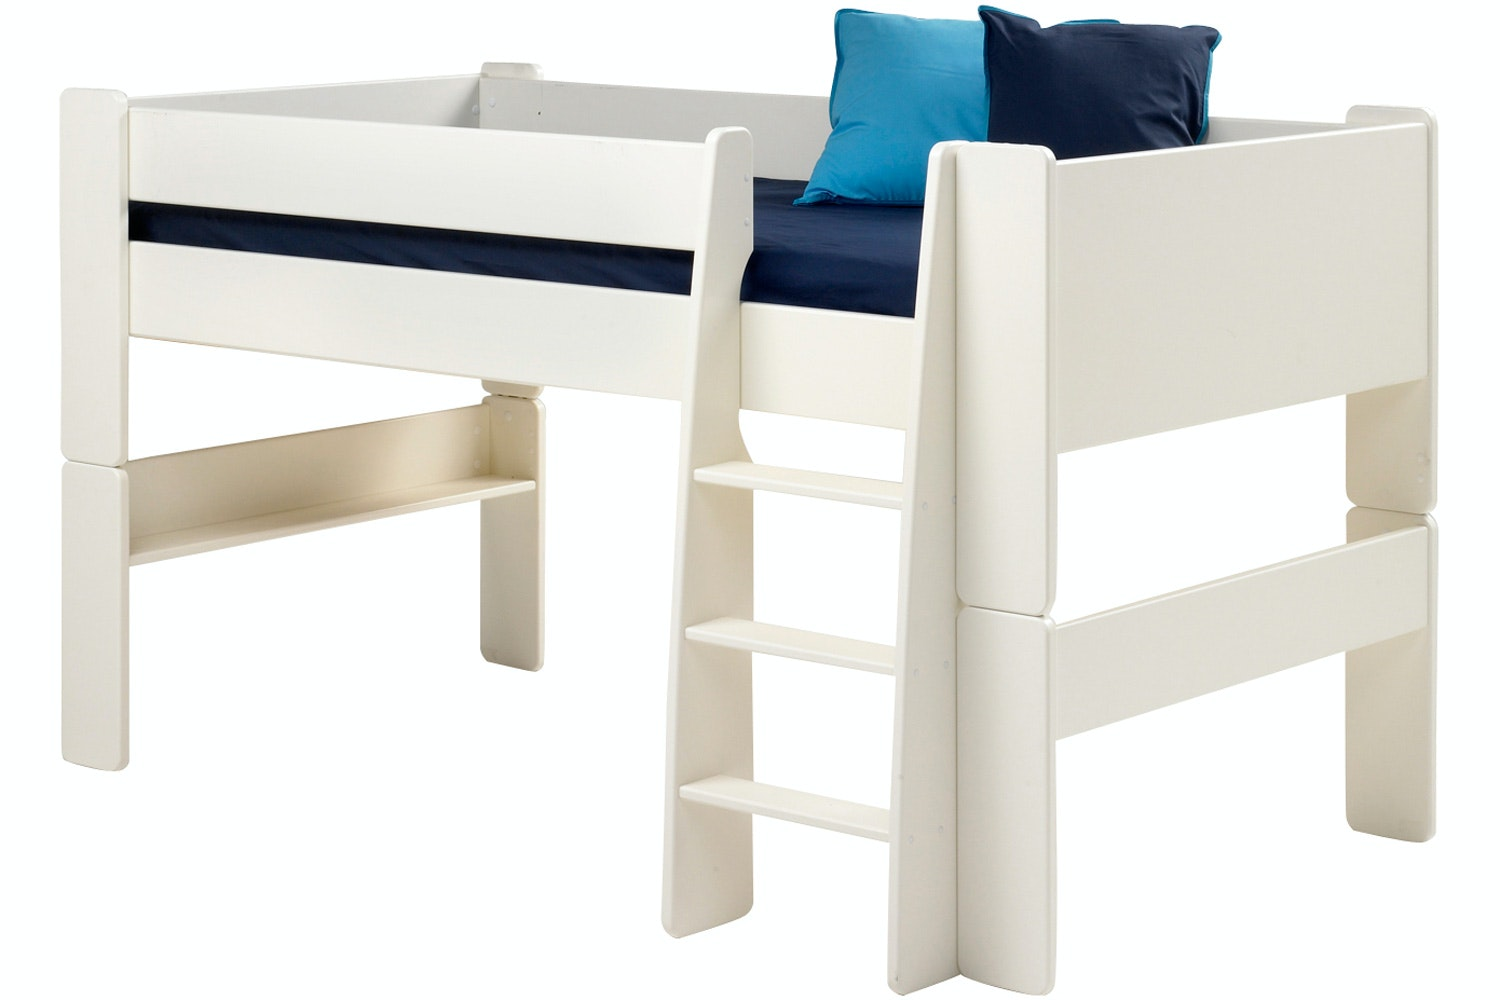 Popsicle Midsleeper Bed Frame White